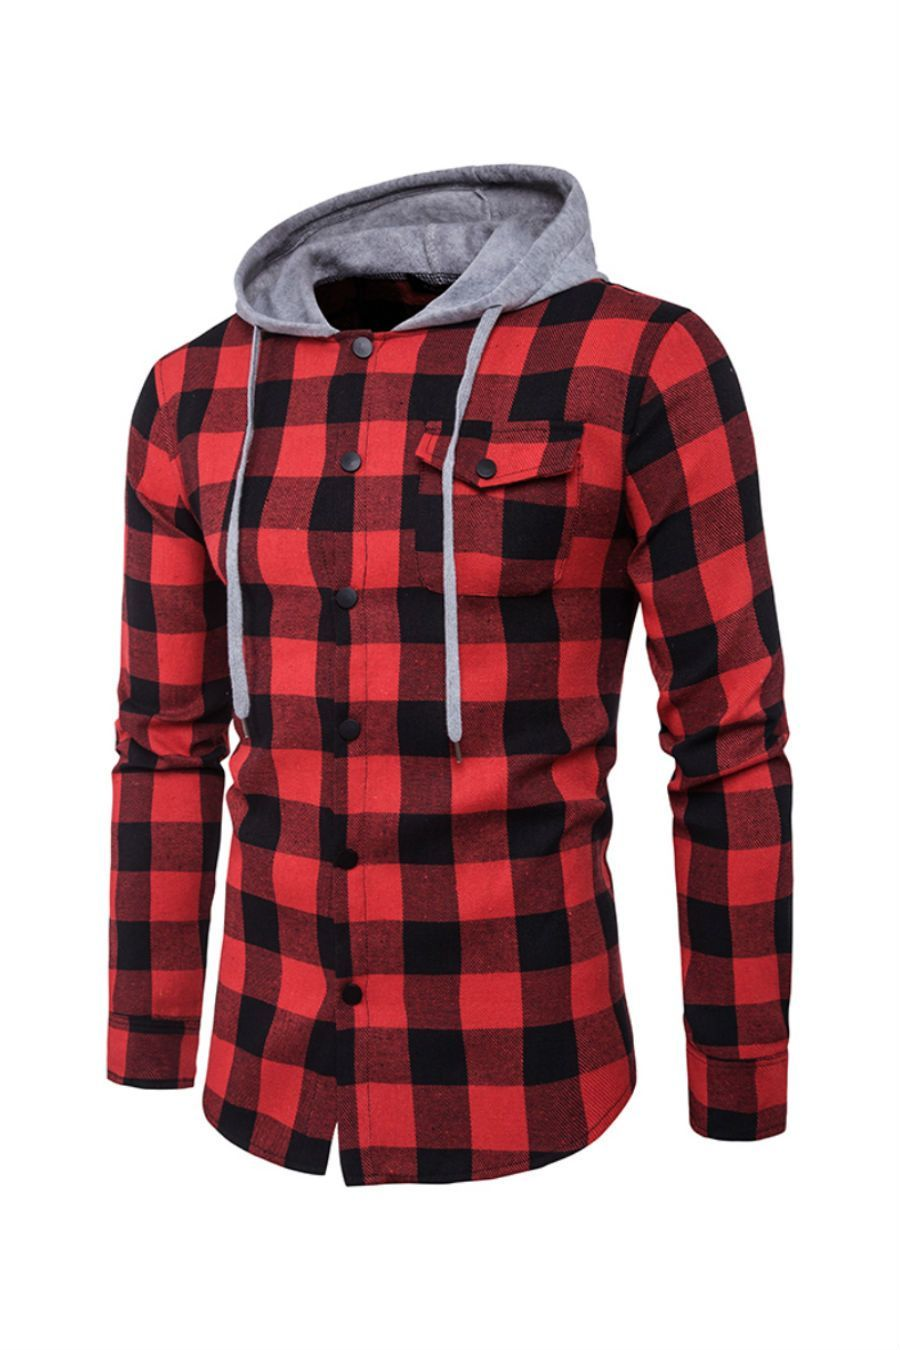 Rsq Midnight Hayride Mens Hooded Flannel Shirt Cream 379243151 Hooded Flannel Mens Flannel Jacket Shirts [ 1286 x 1000 Pixel ]